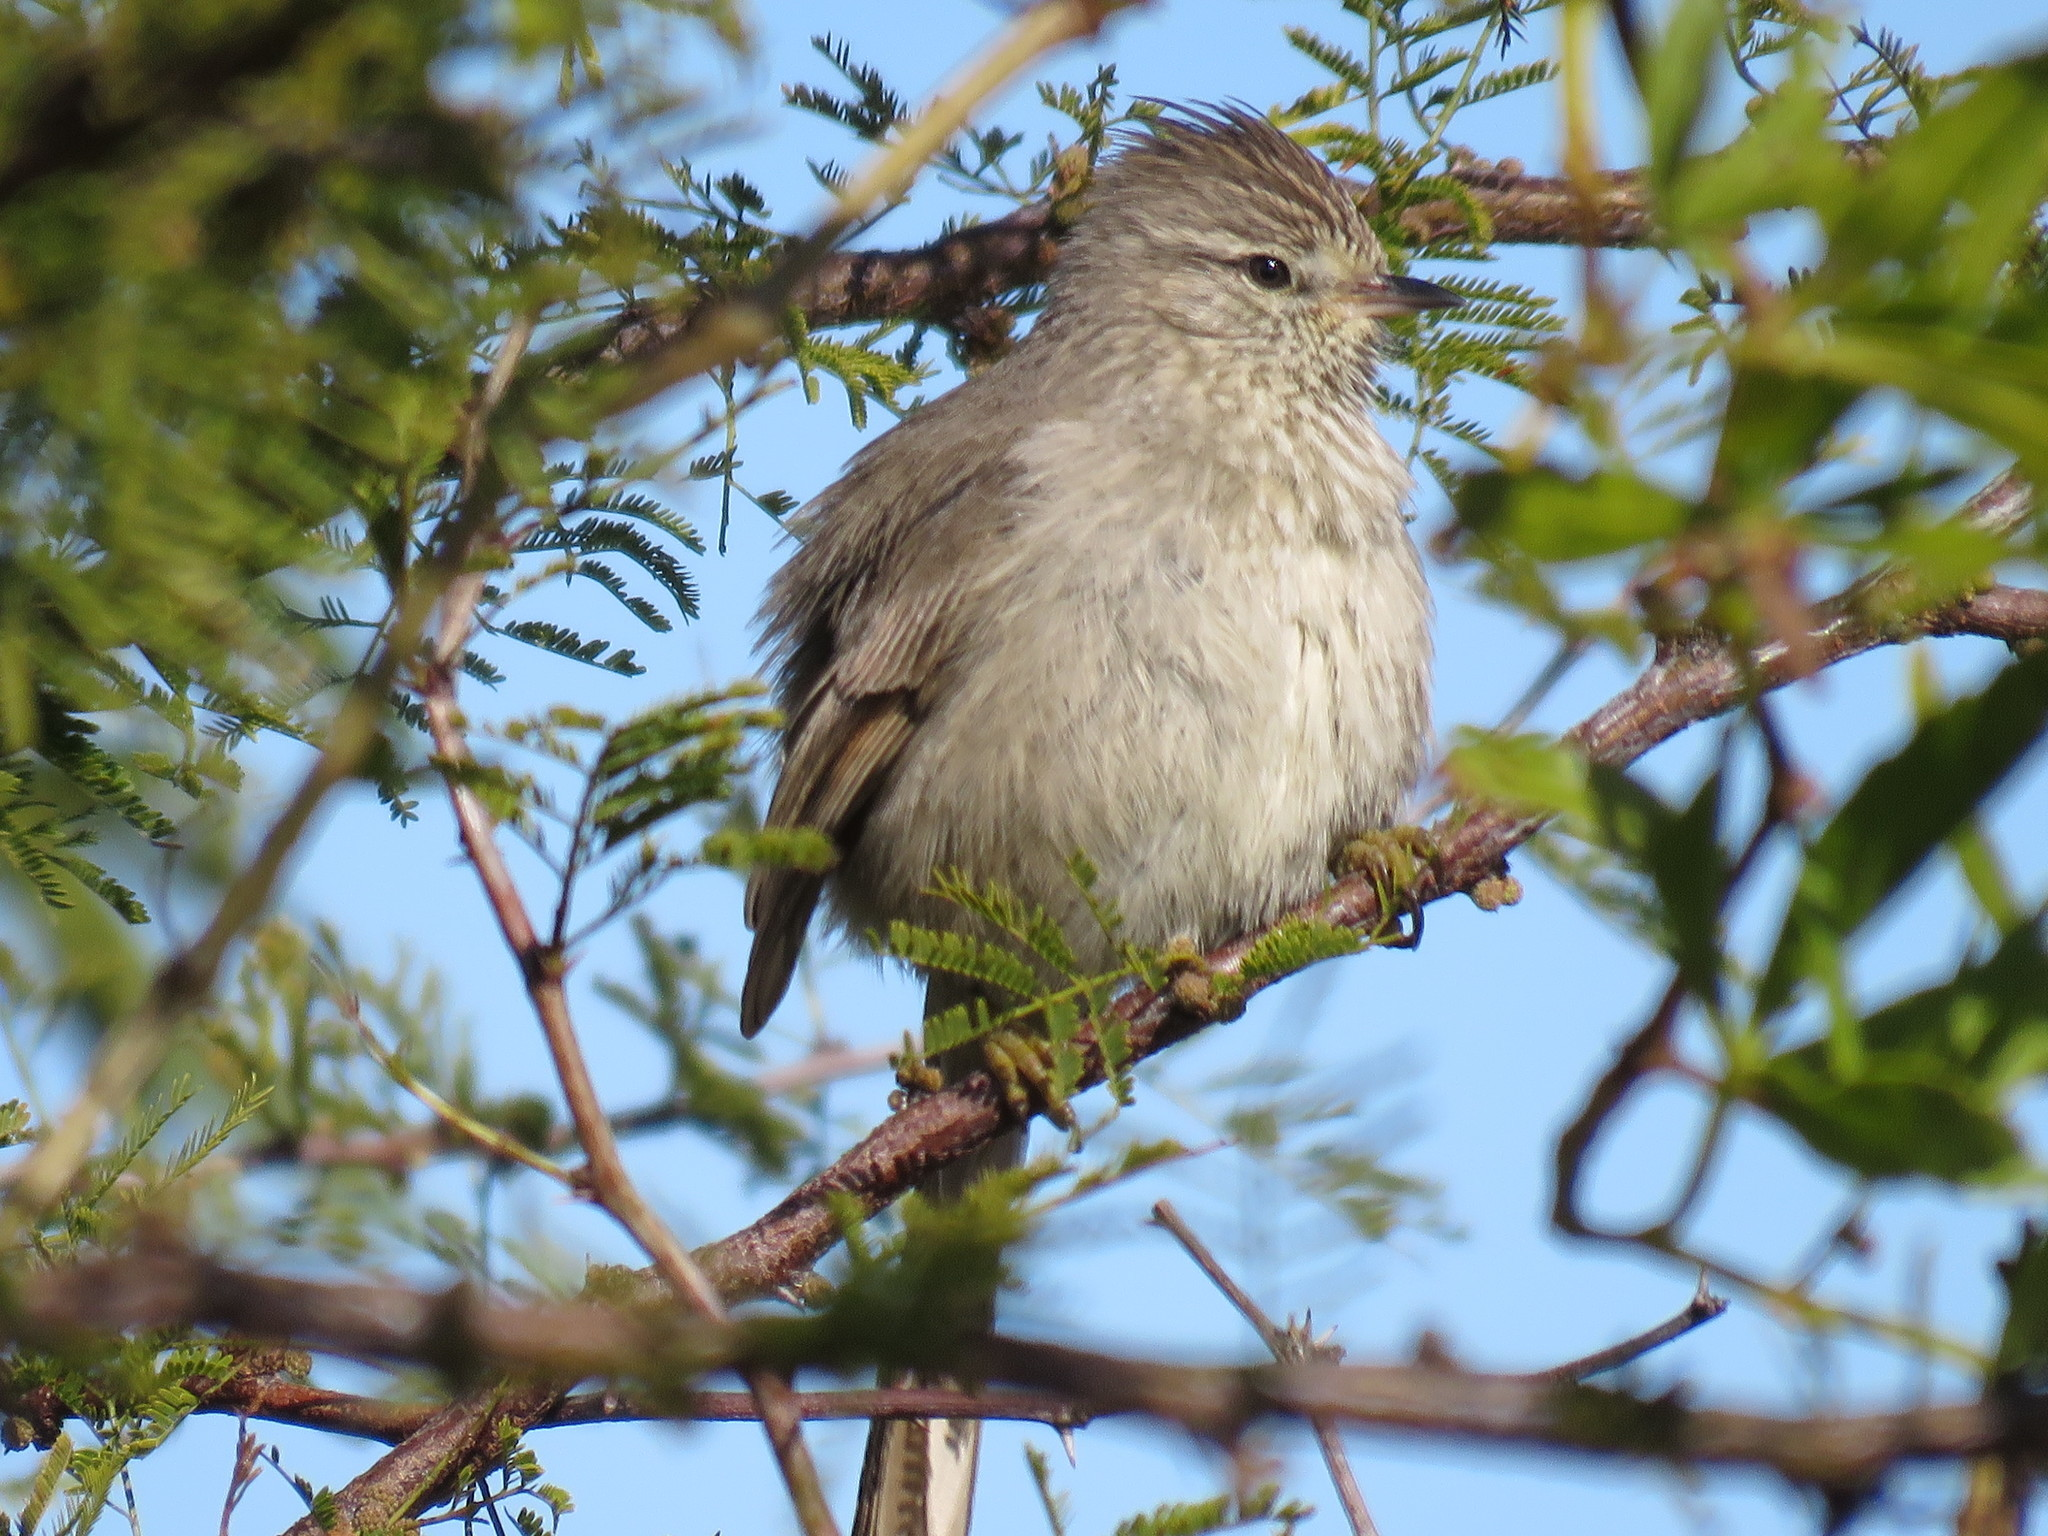 Image of Tufted Tit-Spinetail